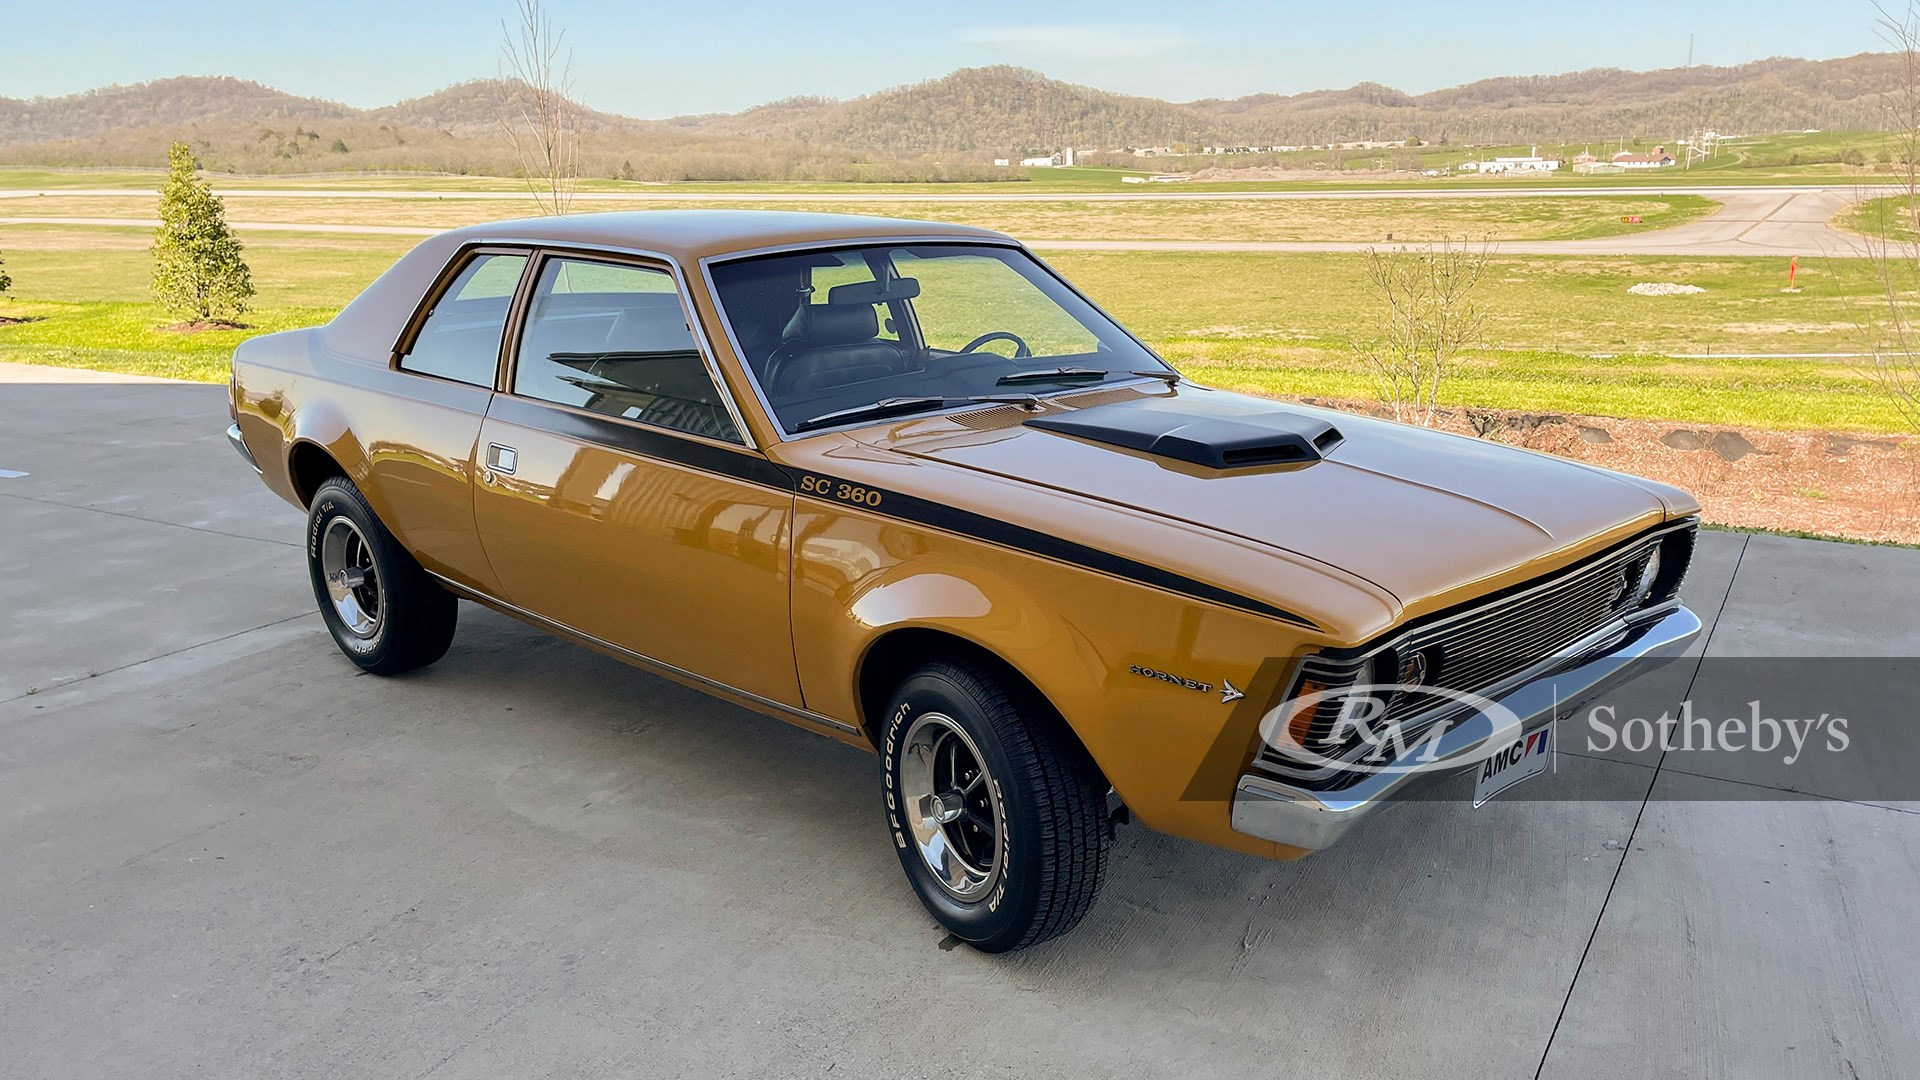 1971 AMC Hornet SC/360 available at RM Sotheby's Online Only Open Roads April Auction 2021